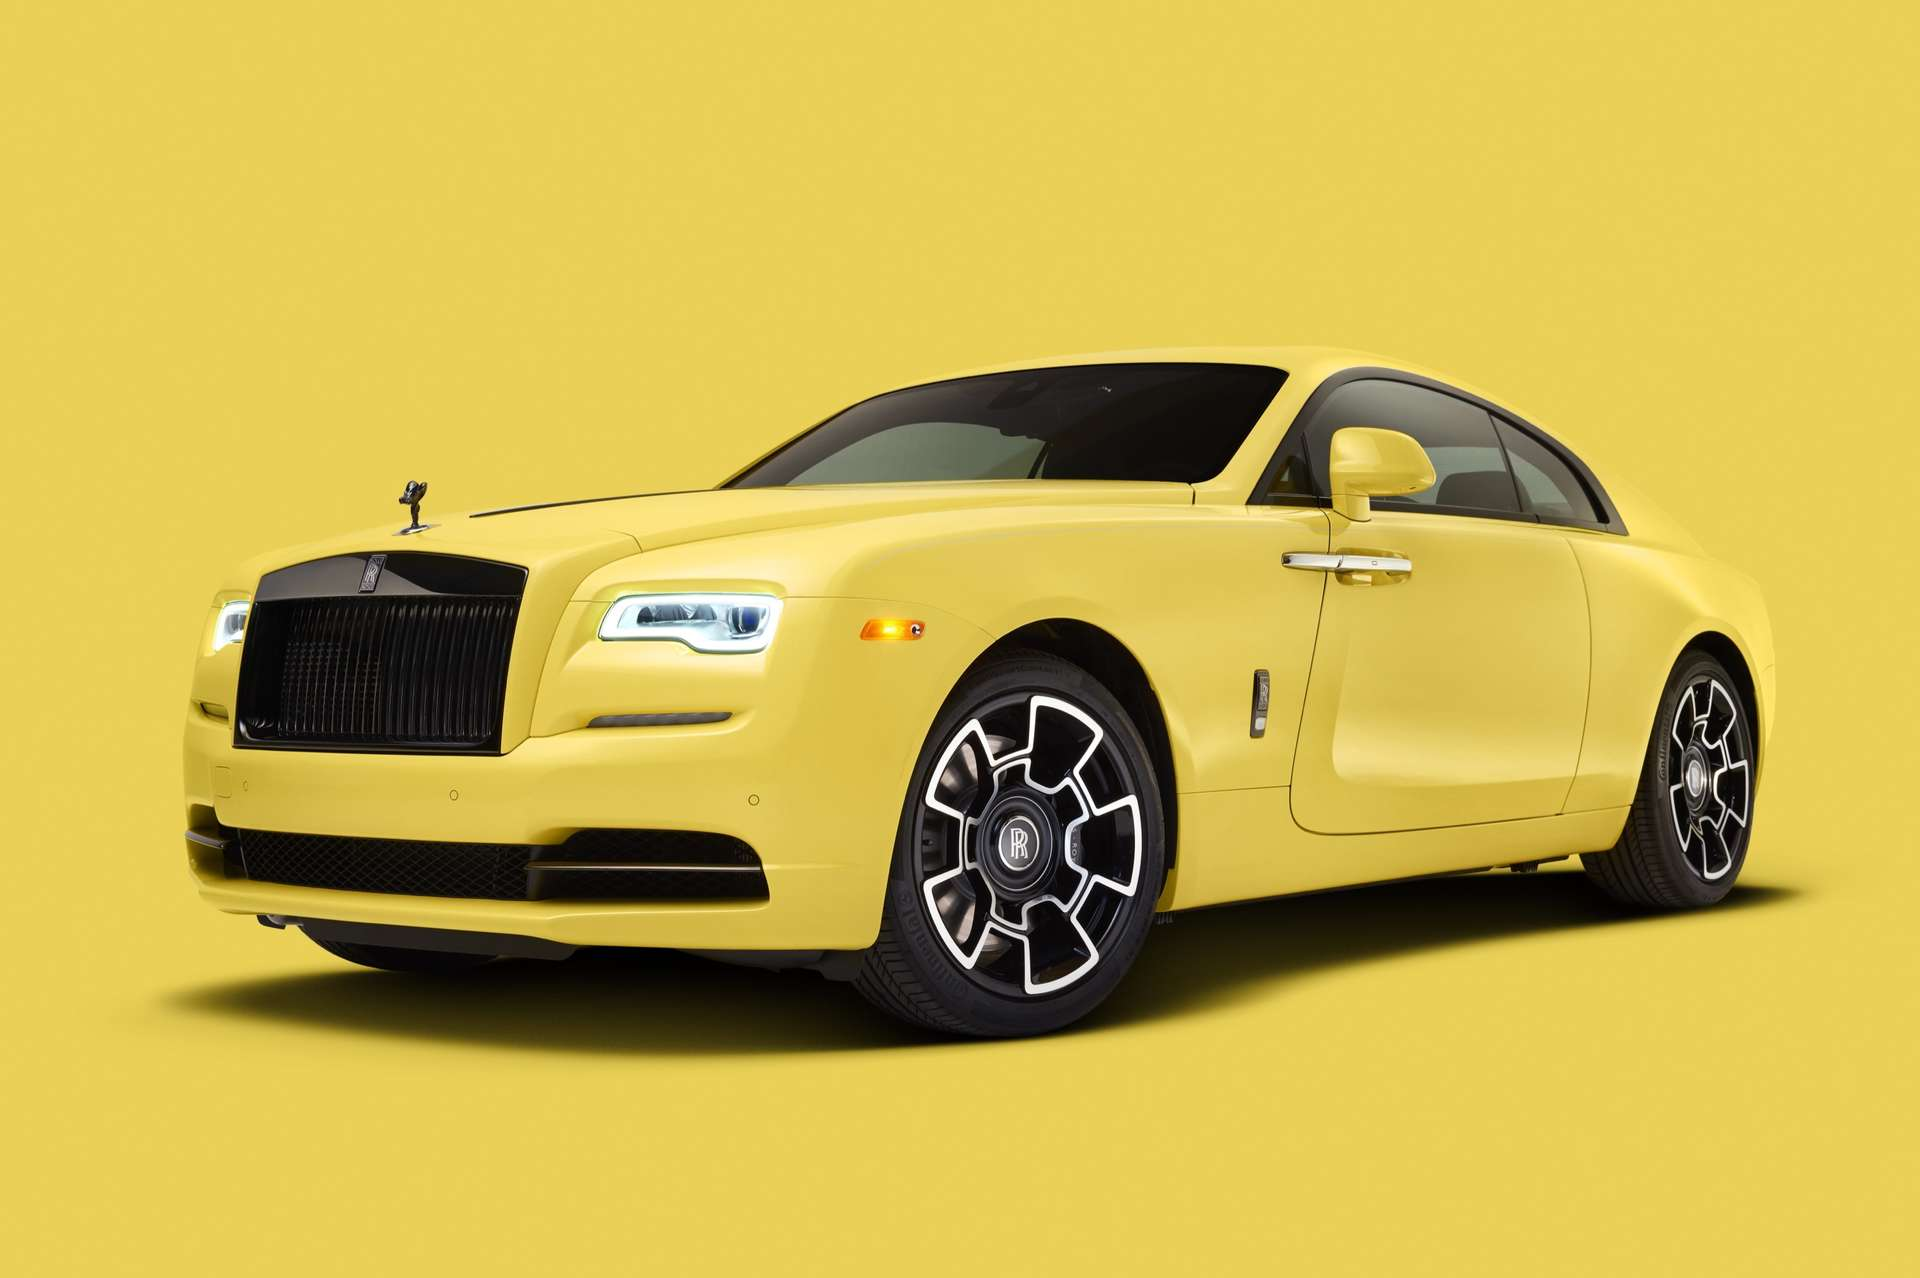 A side view of a Bespoke Pastel Wraith Rolls-Royce Motor Car